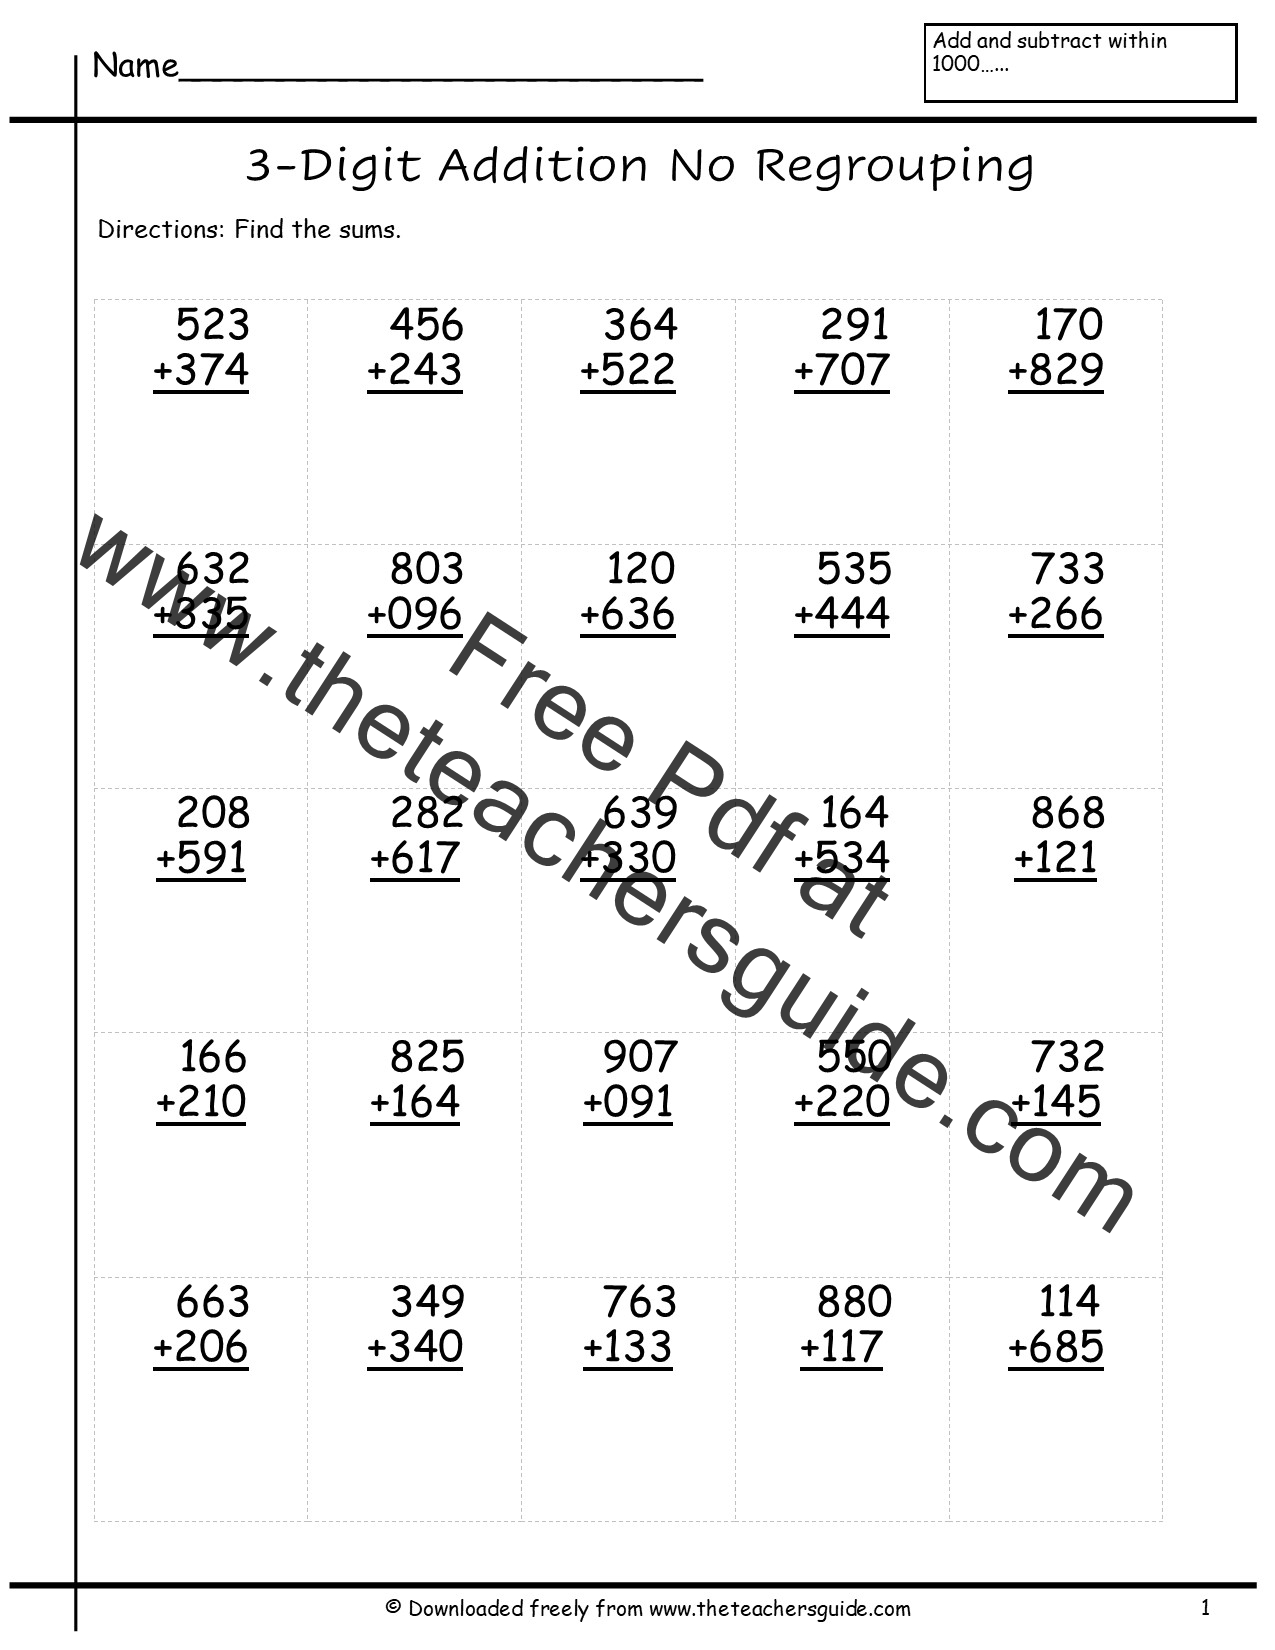 free math printouts from the teacher 39 s guide. Black Bedroom Furniture Sets. Home Design Ideas